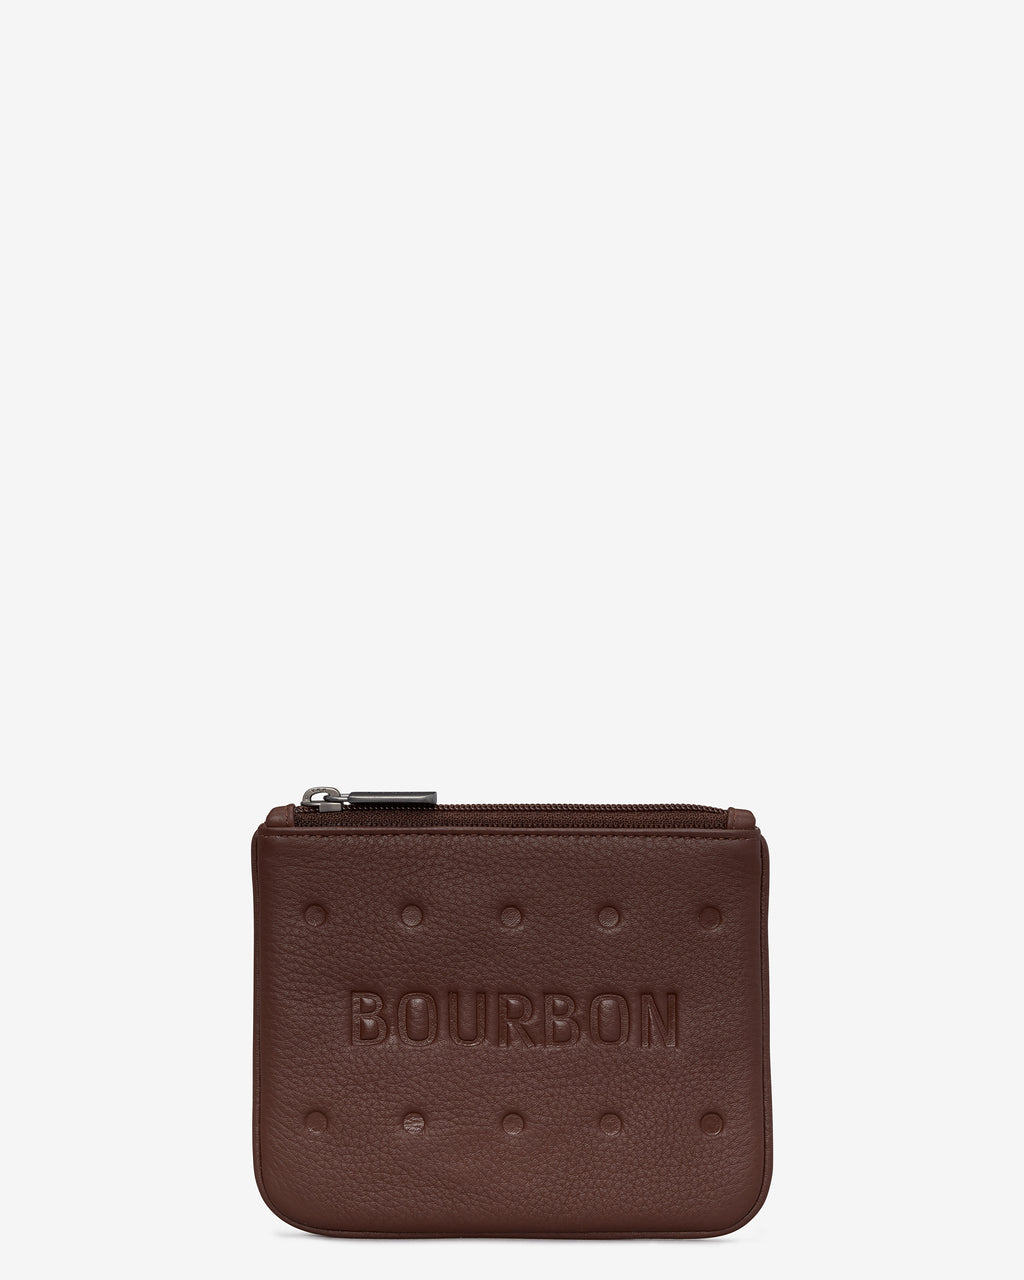 Bourbon Biscuit Leather Zip Top Purse